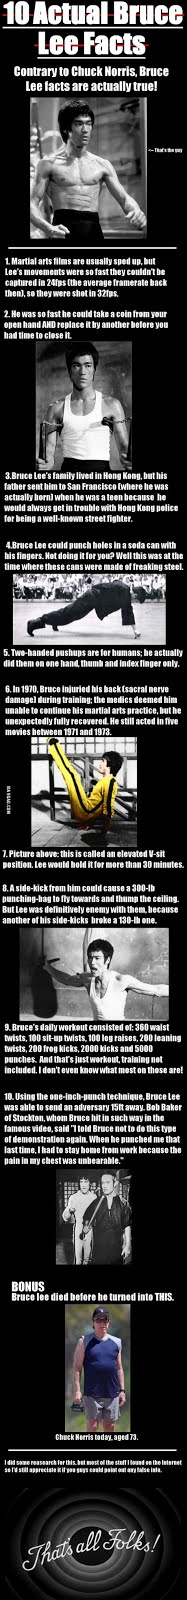 10 Actual Bruce Lee Facts